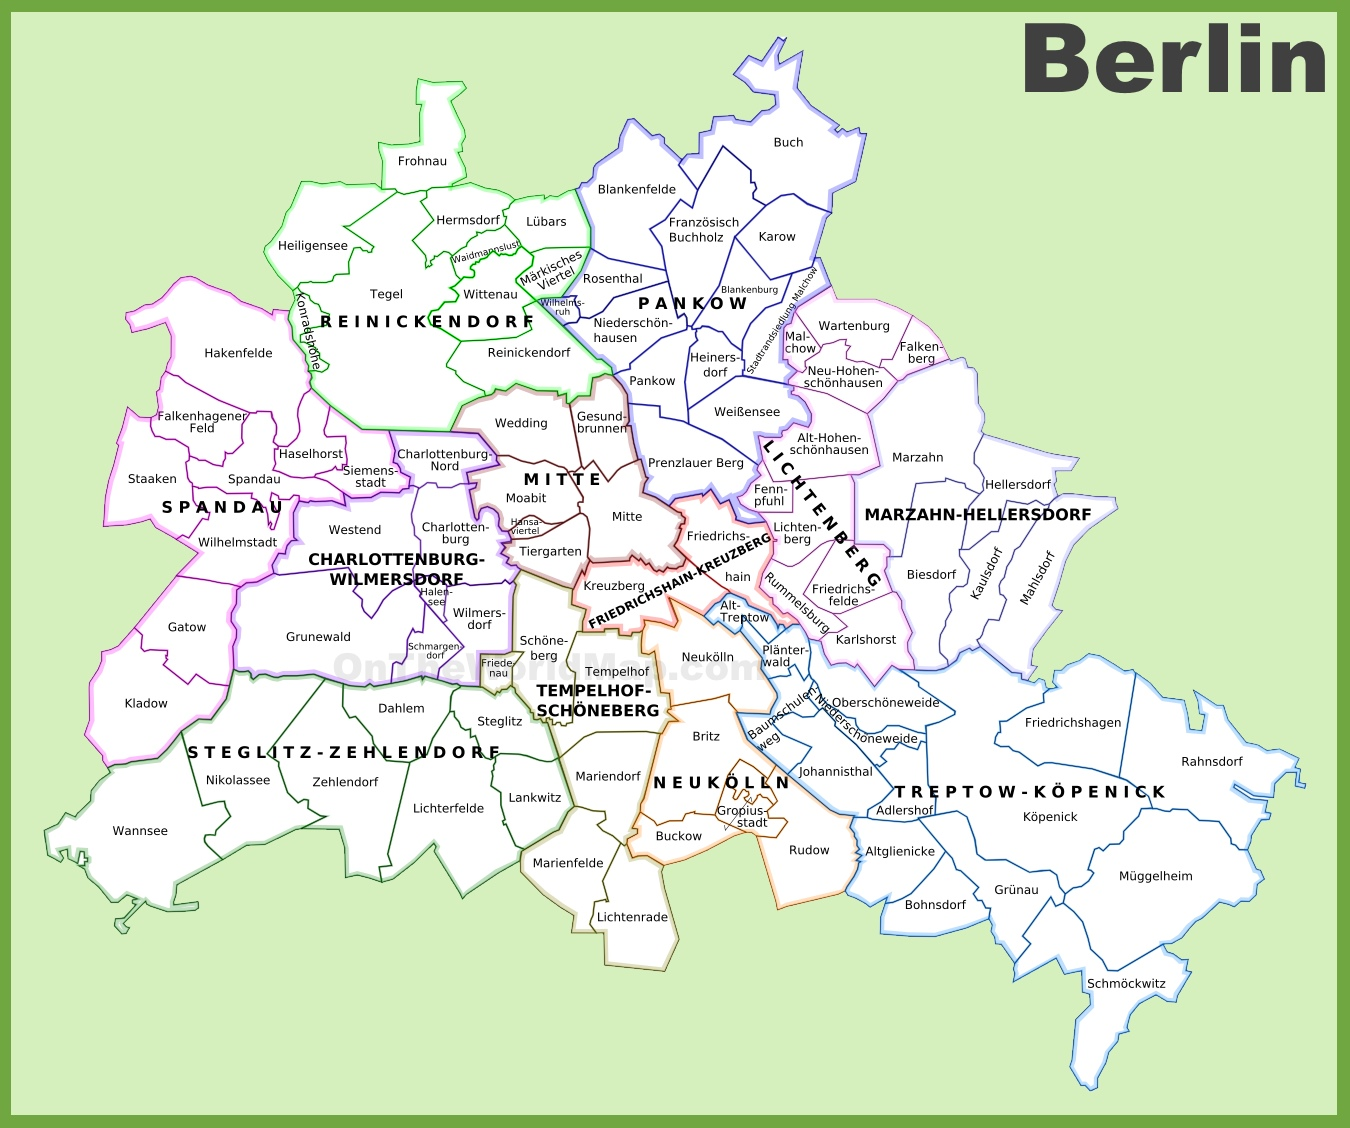 Berlin Map Of Germany.Berlin Districts Map